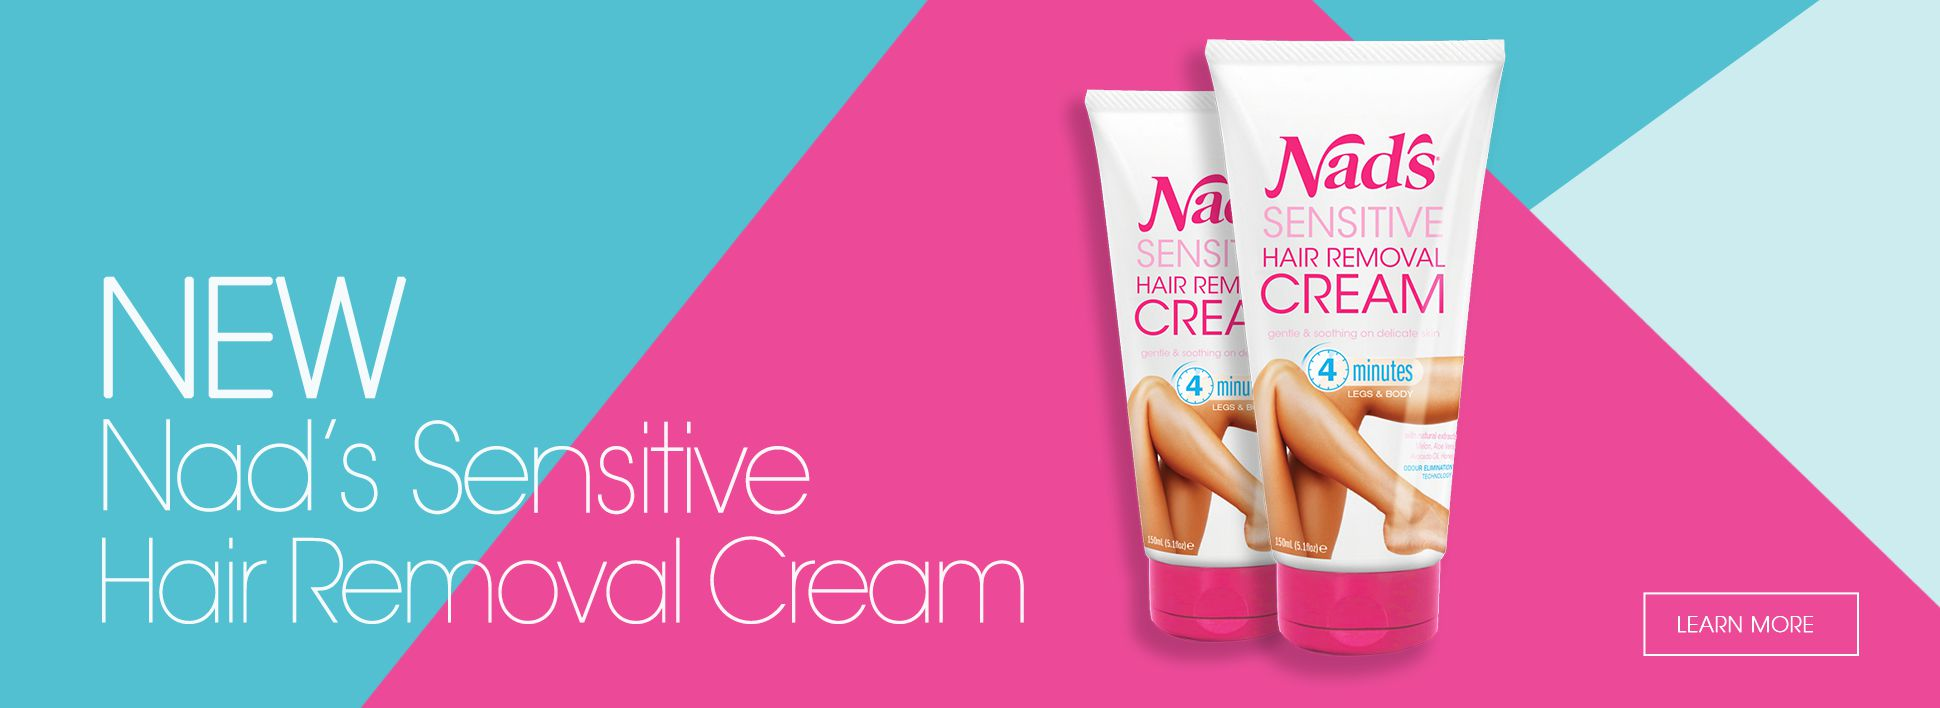 Nad's New Sensitive Hair Removal Cream - More Info